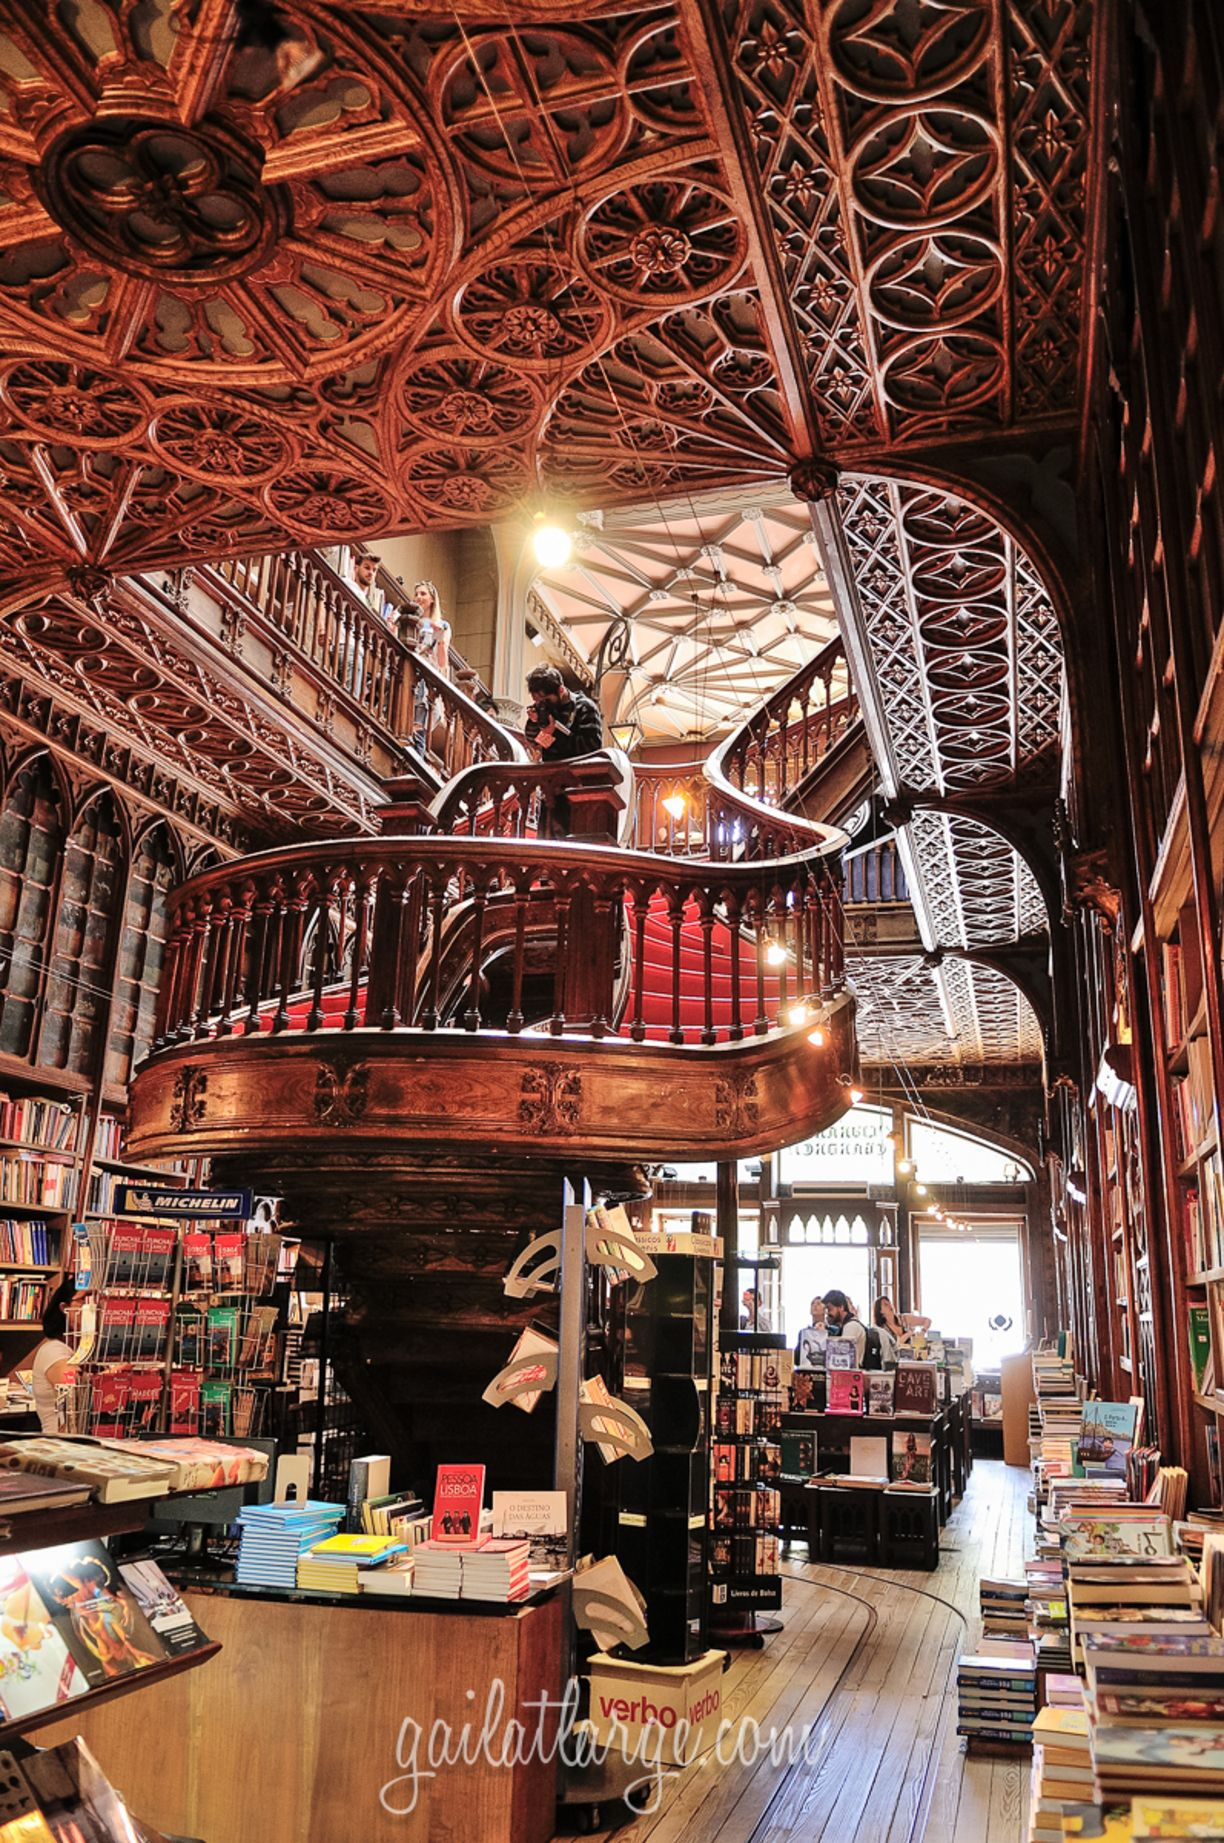 Livraria Lello Irmao Porto Portugal May 22 2015this Is The First Time I Ve Ever Been Able To Photograph The Interior Of Porto Portugal Beautiful Library